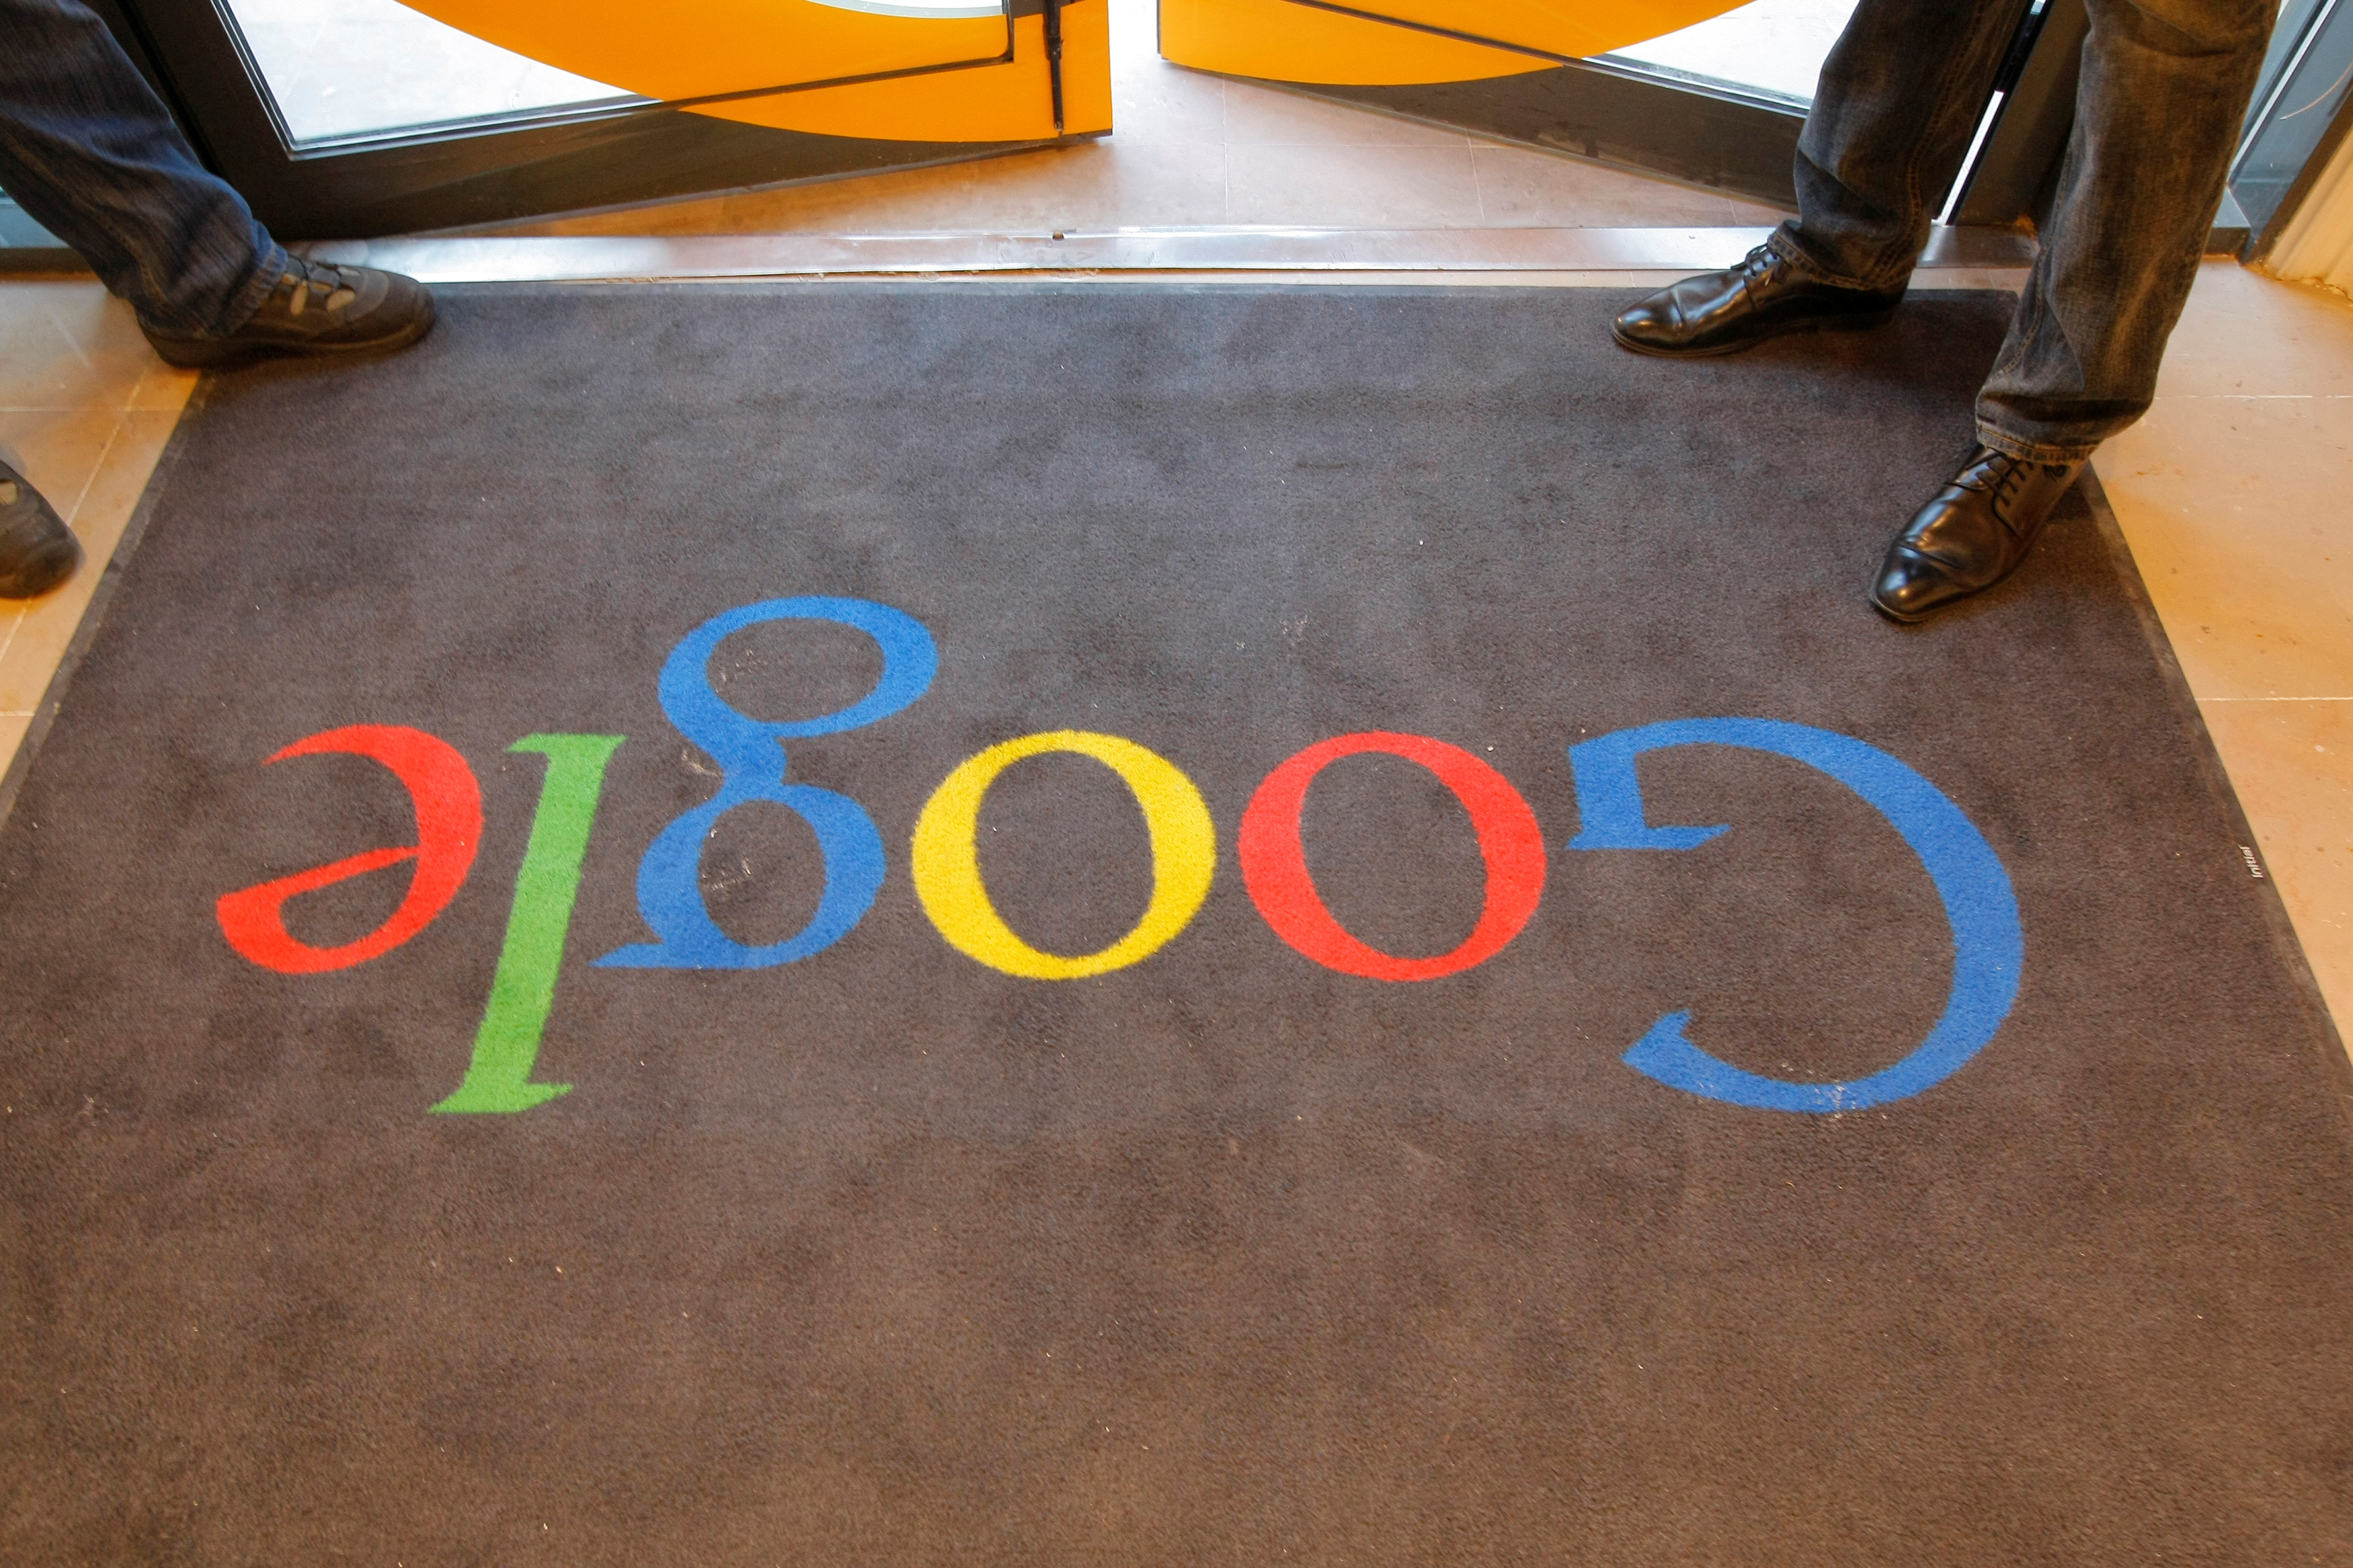 A Google carpet is seen at the entrance of the new headquarters of Google France before its official inauguration in Paris, France, Dec. 6, 2011. (Rueters)